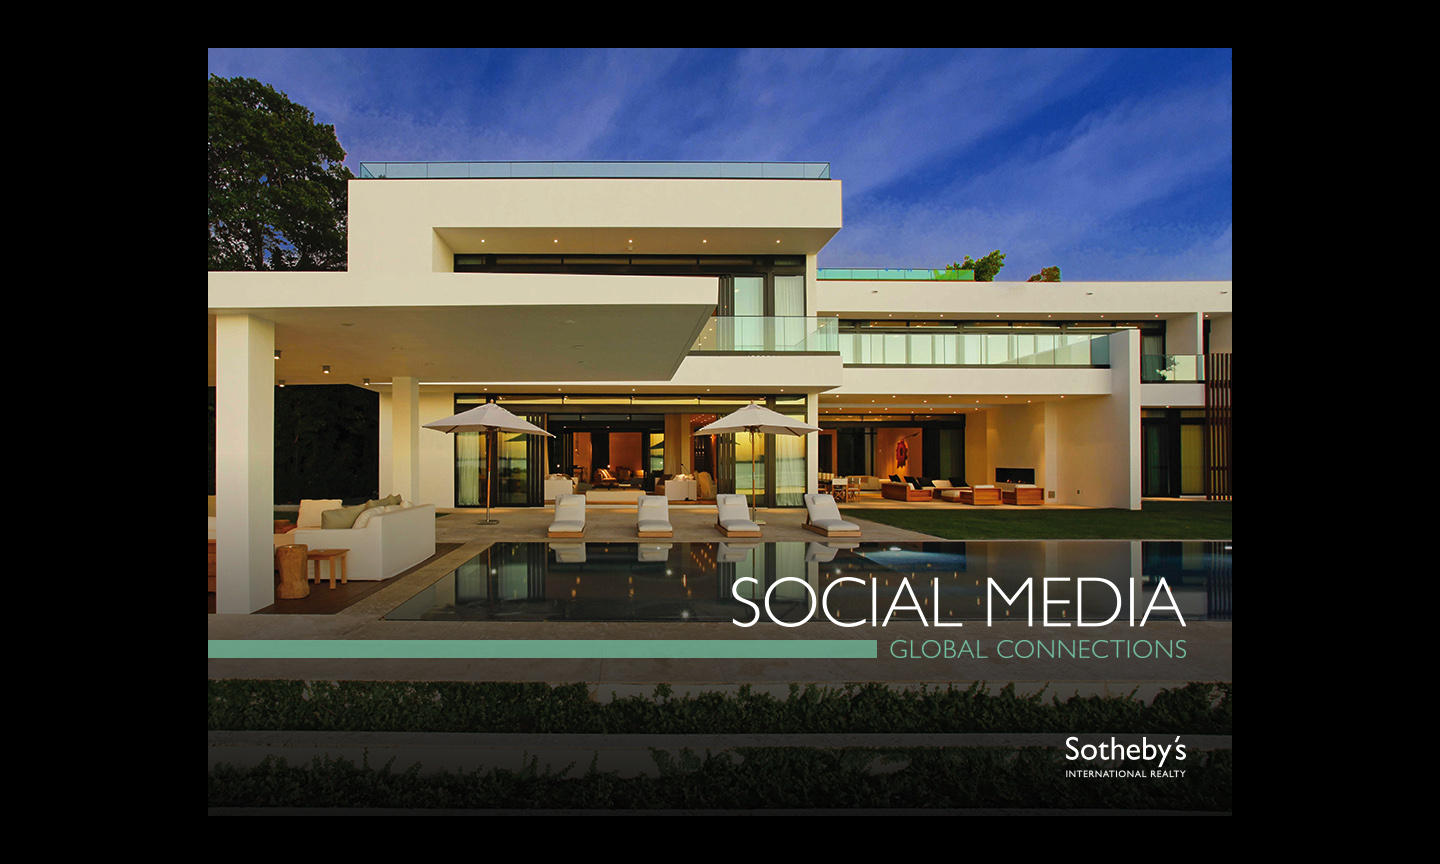 App of the Week: Sotheby's International Realty